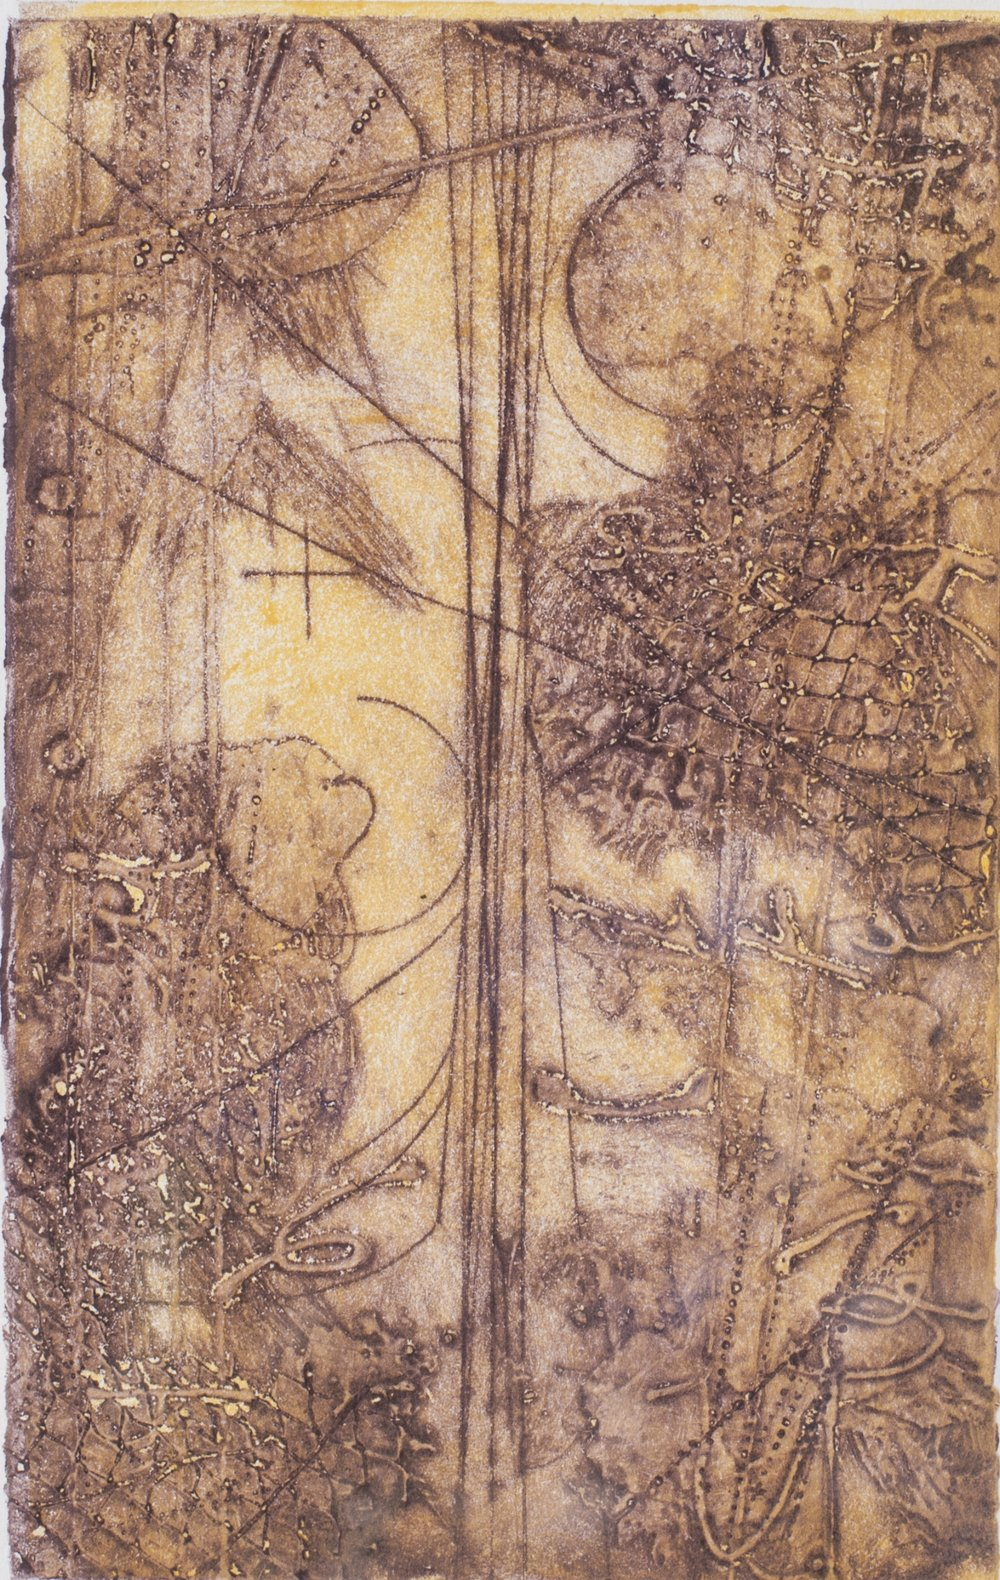 Collision Transit Study 6 , encaustic collagraph monotype on paper 11 x 9 inches.   Studio Inventory